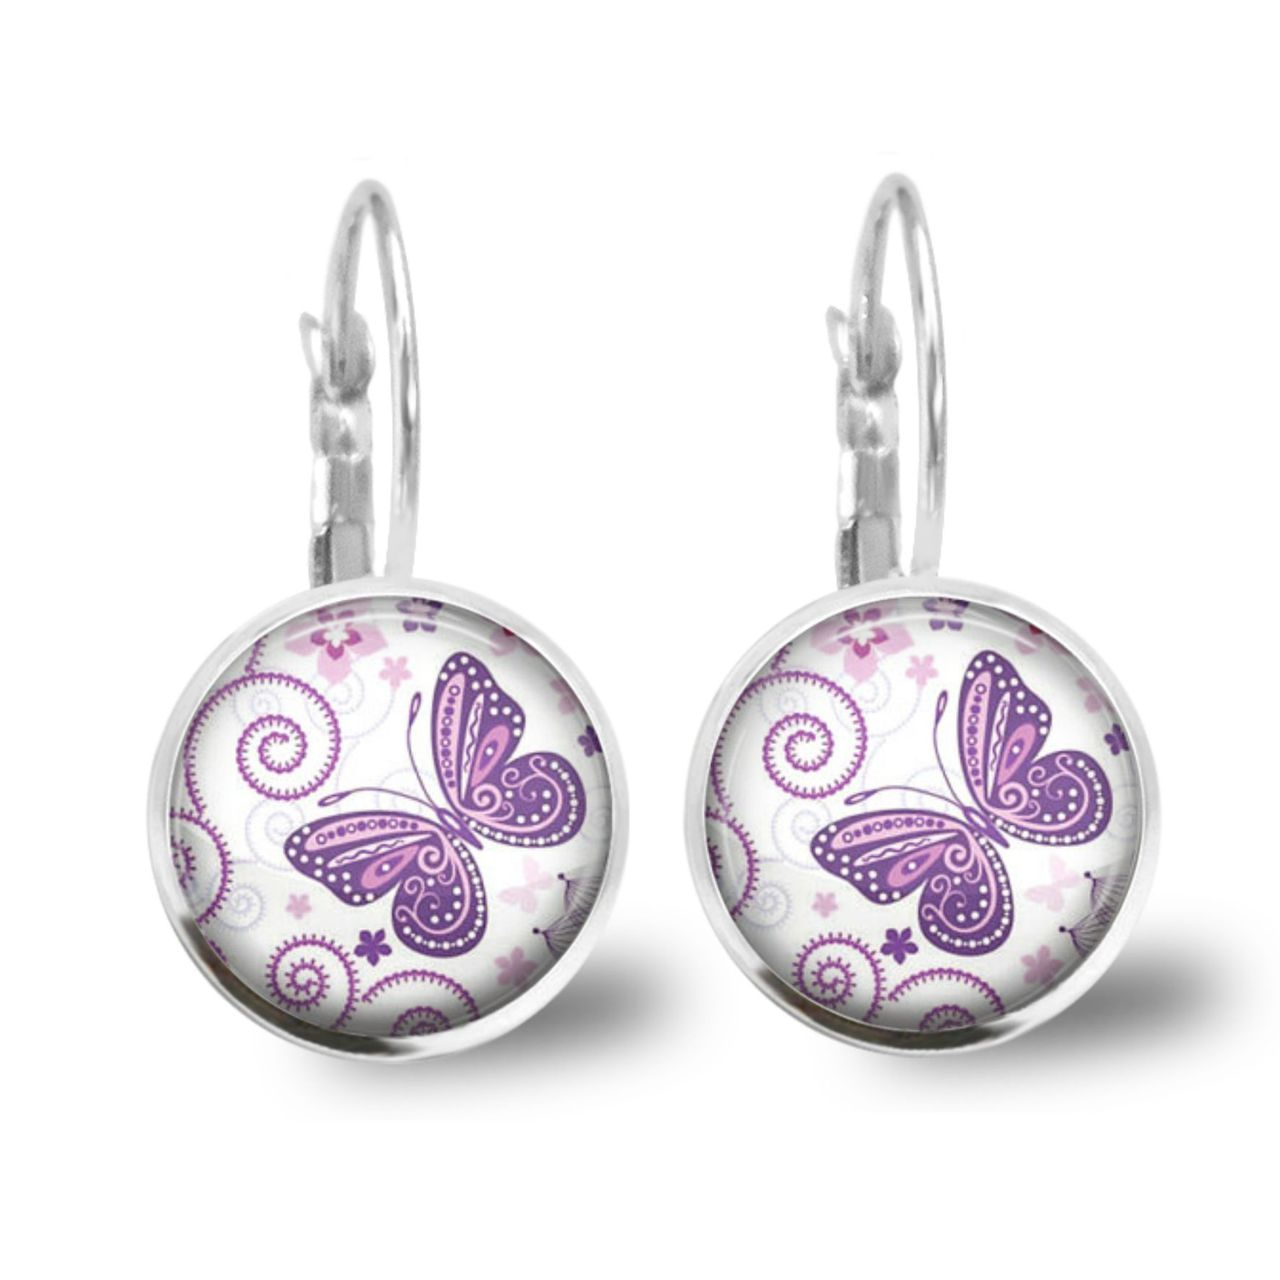 Chatterbox City - Butterfly Lever Back Glass Cabochon Earrings, $10.00 (http://www.chatterboxcity.com.au/butterfly-lever-back-glass-cabochon-earrings/)